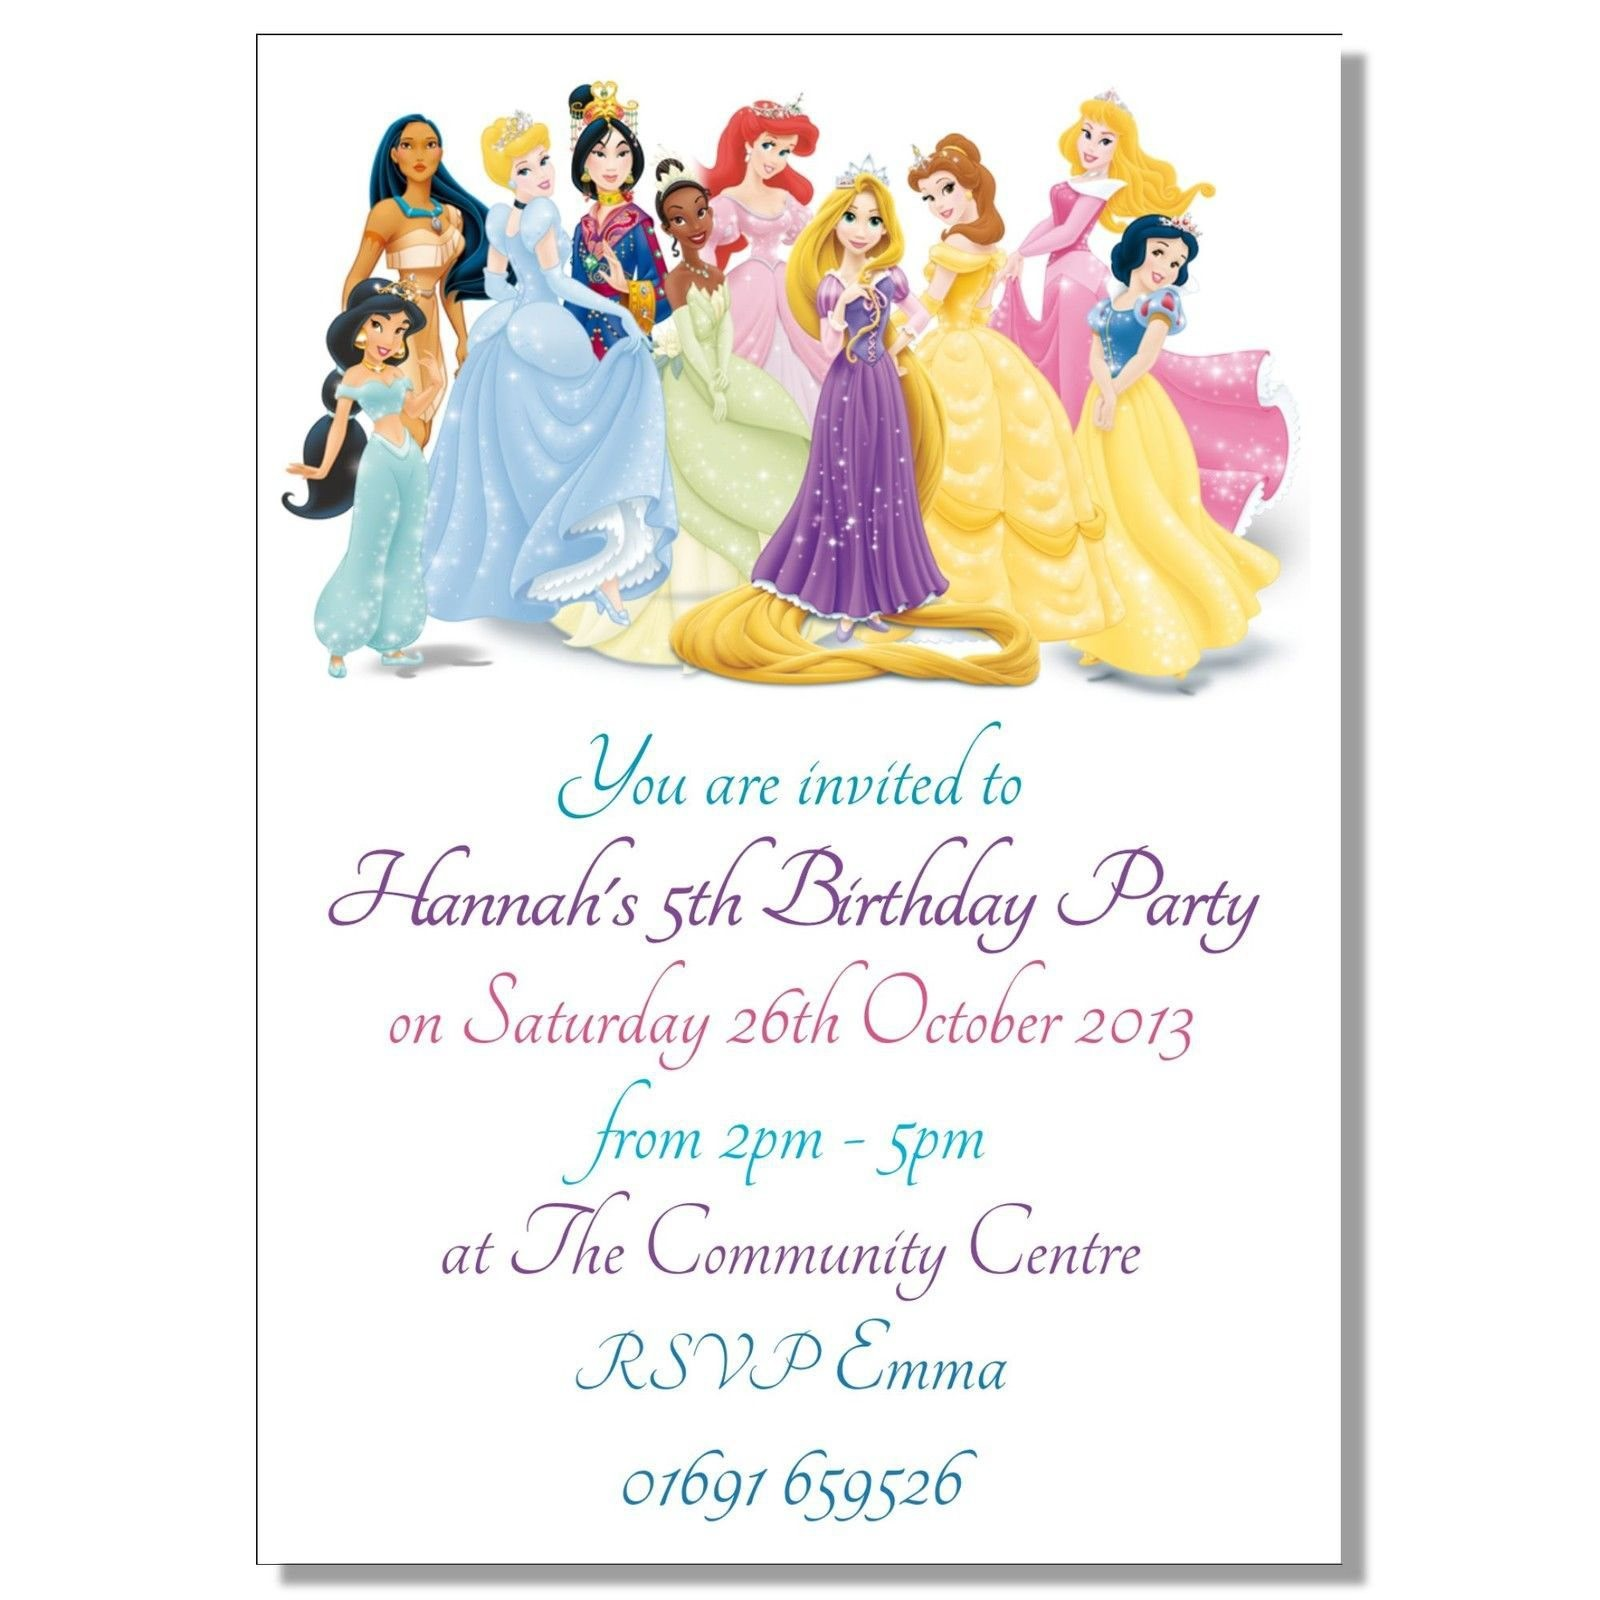 princess birthday template ; invitation-template-disney-princess-new-disney-princesses-birthday-invitations-disney-princess-birthday-of-invitation-template-disney-princess